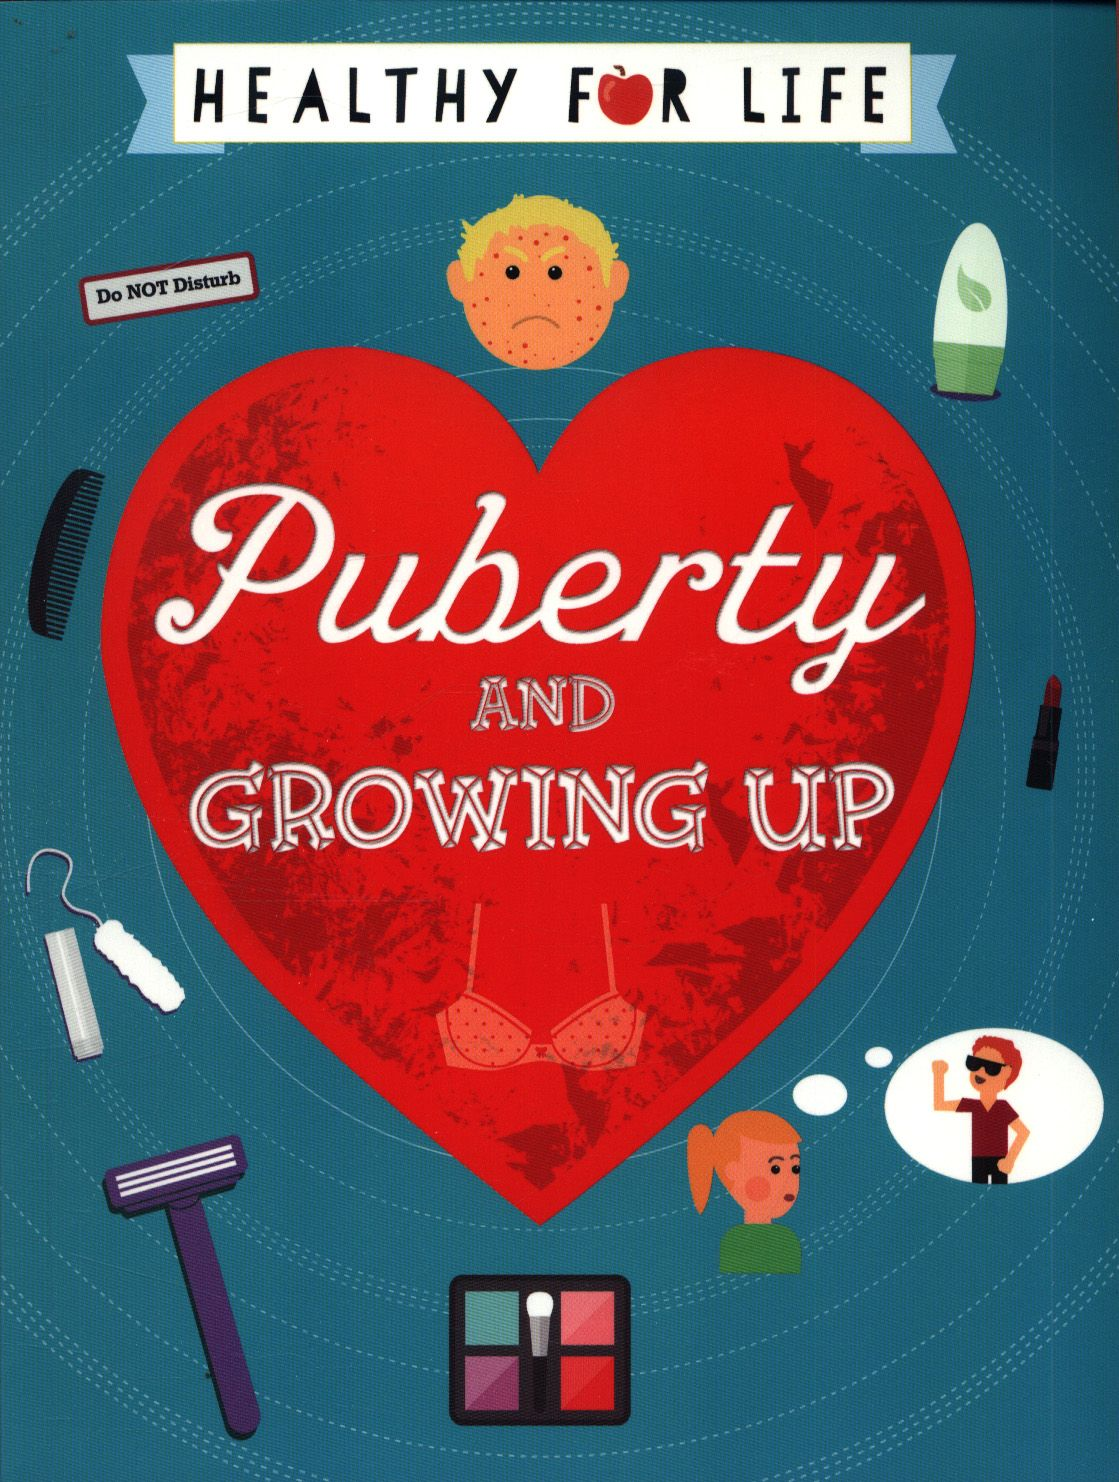 Puberty Is Often A Confusing Time With Many Changes Both